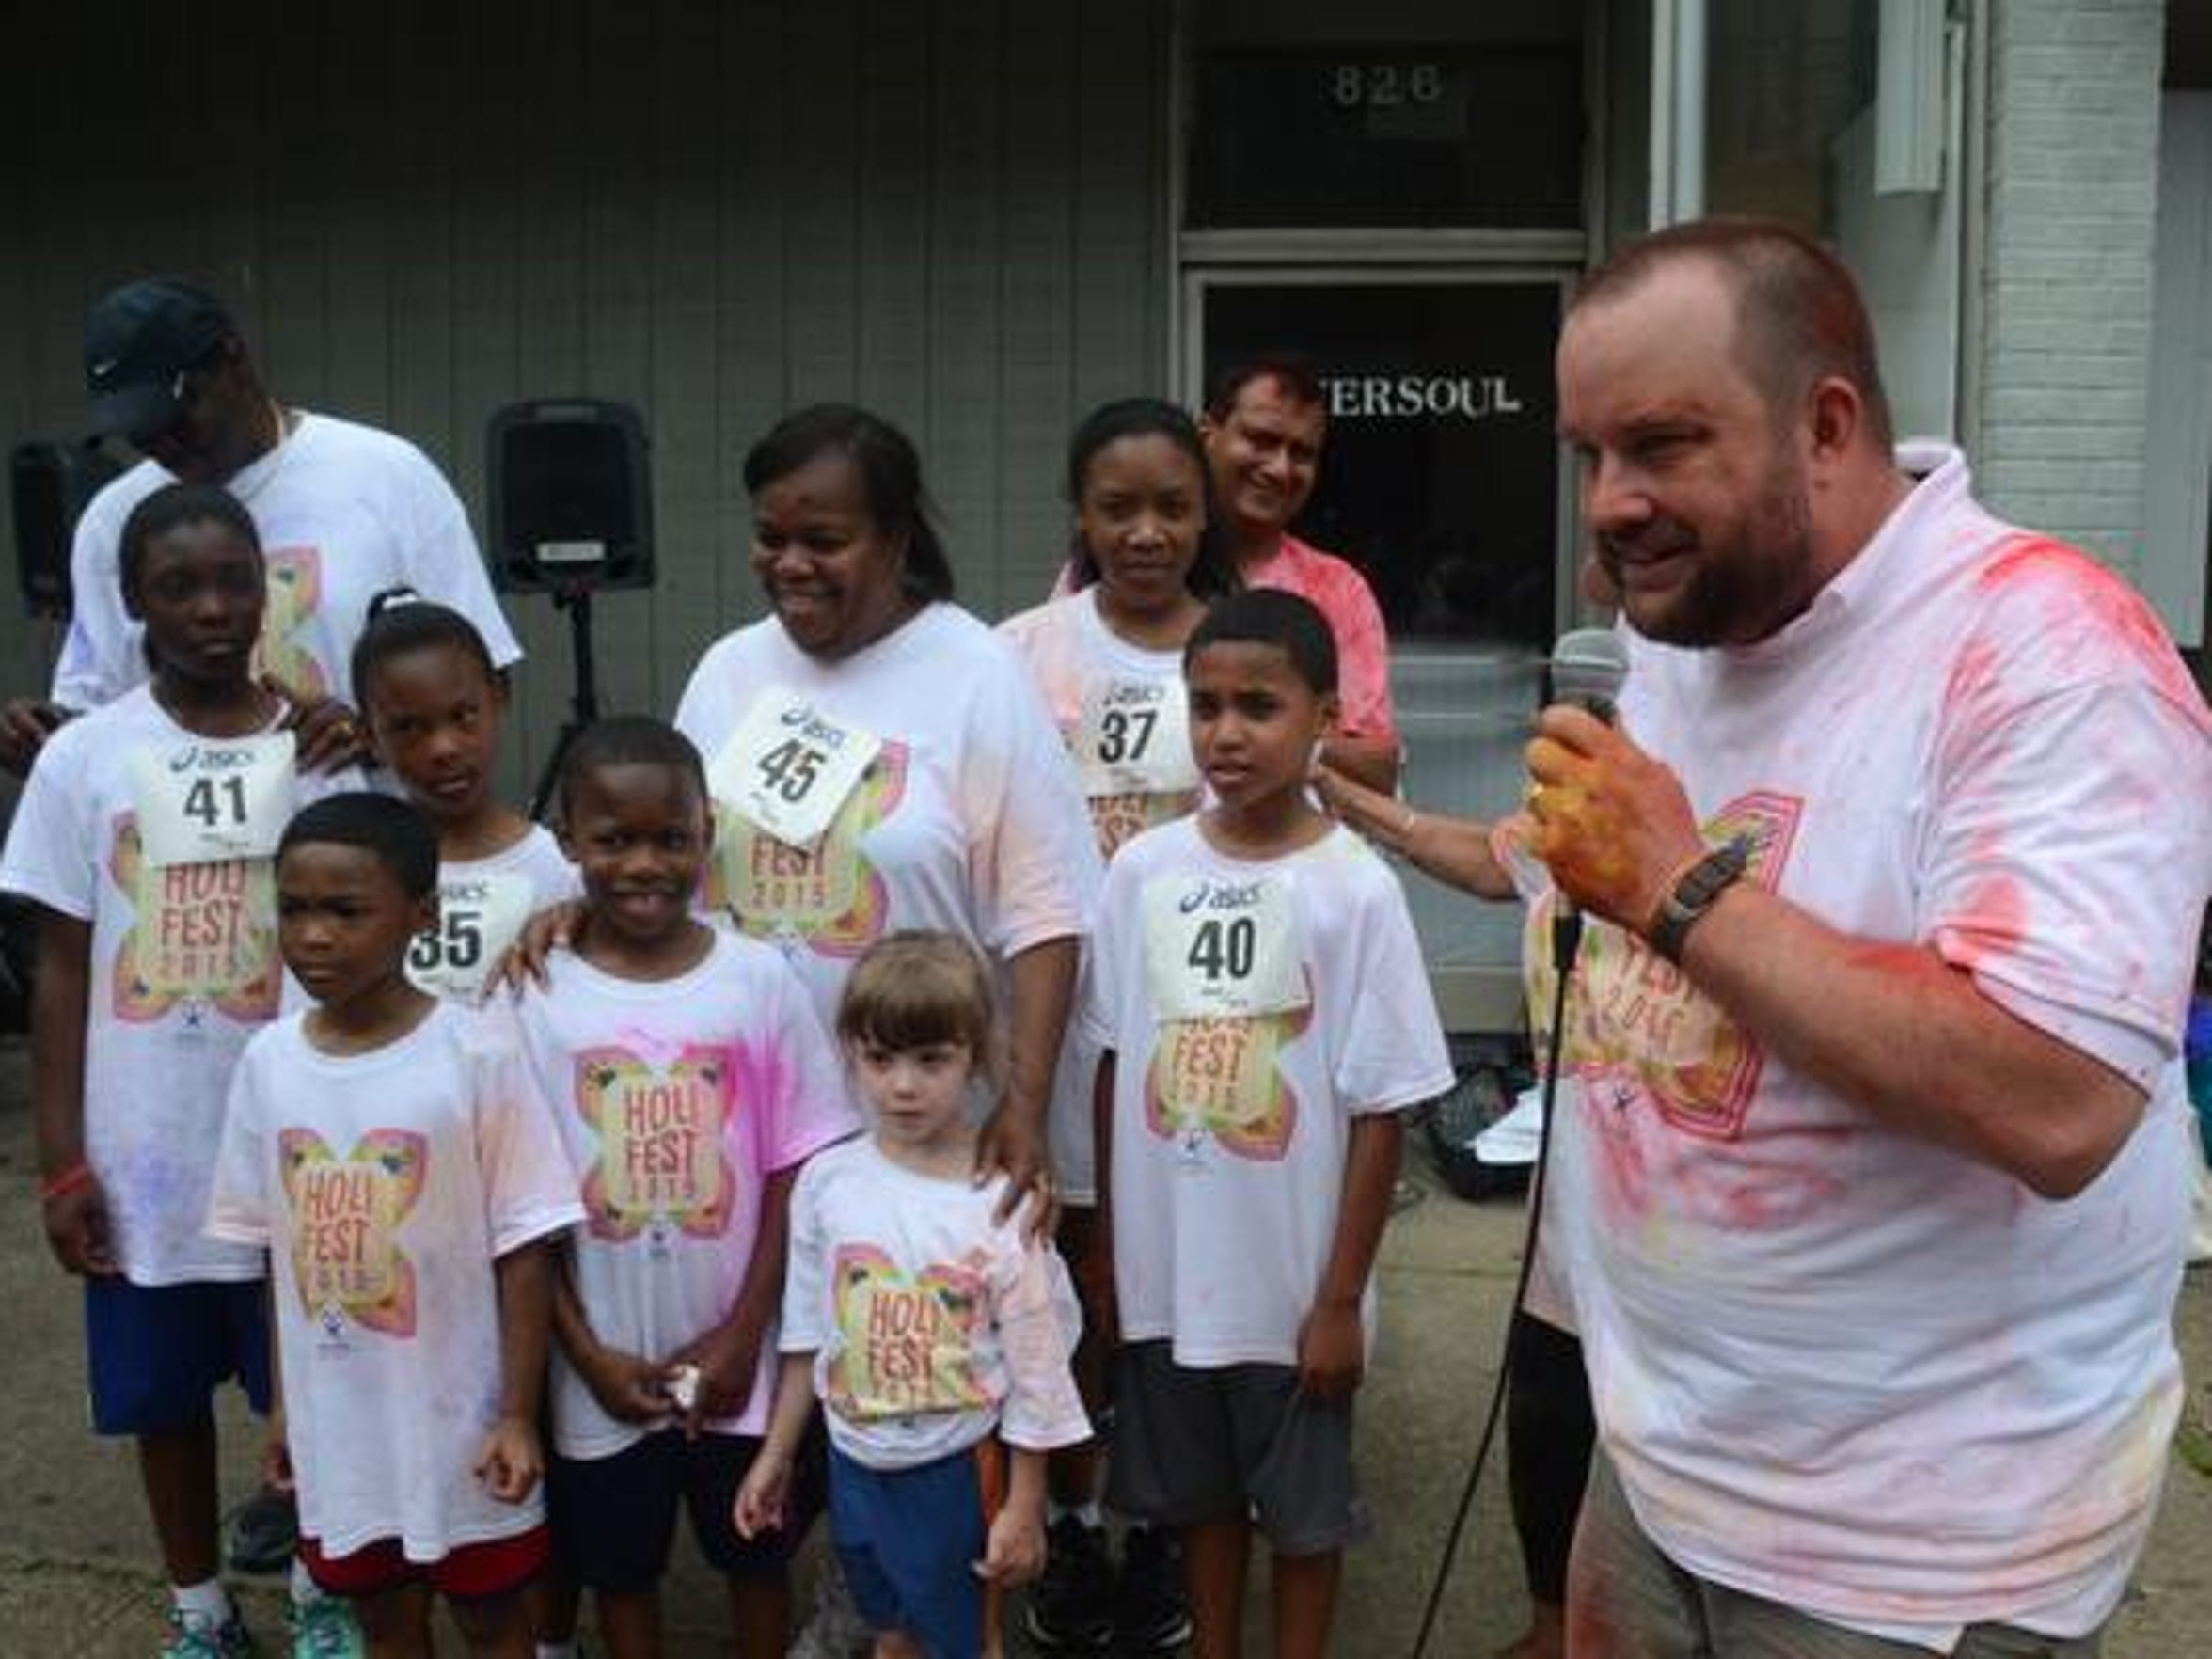 Wade Bond (far right), executive director of the Rapides Children's Advocacy Center Inc., introduces Renee and Ronnie Gillam and their seven adopted children Saturday at the Holi Festival, a fundraiser for the group, in downtown Alexandria. The Gillams came into contact with CASA, a program of the organization, through the children.